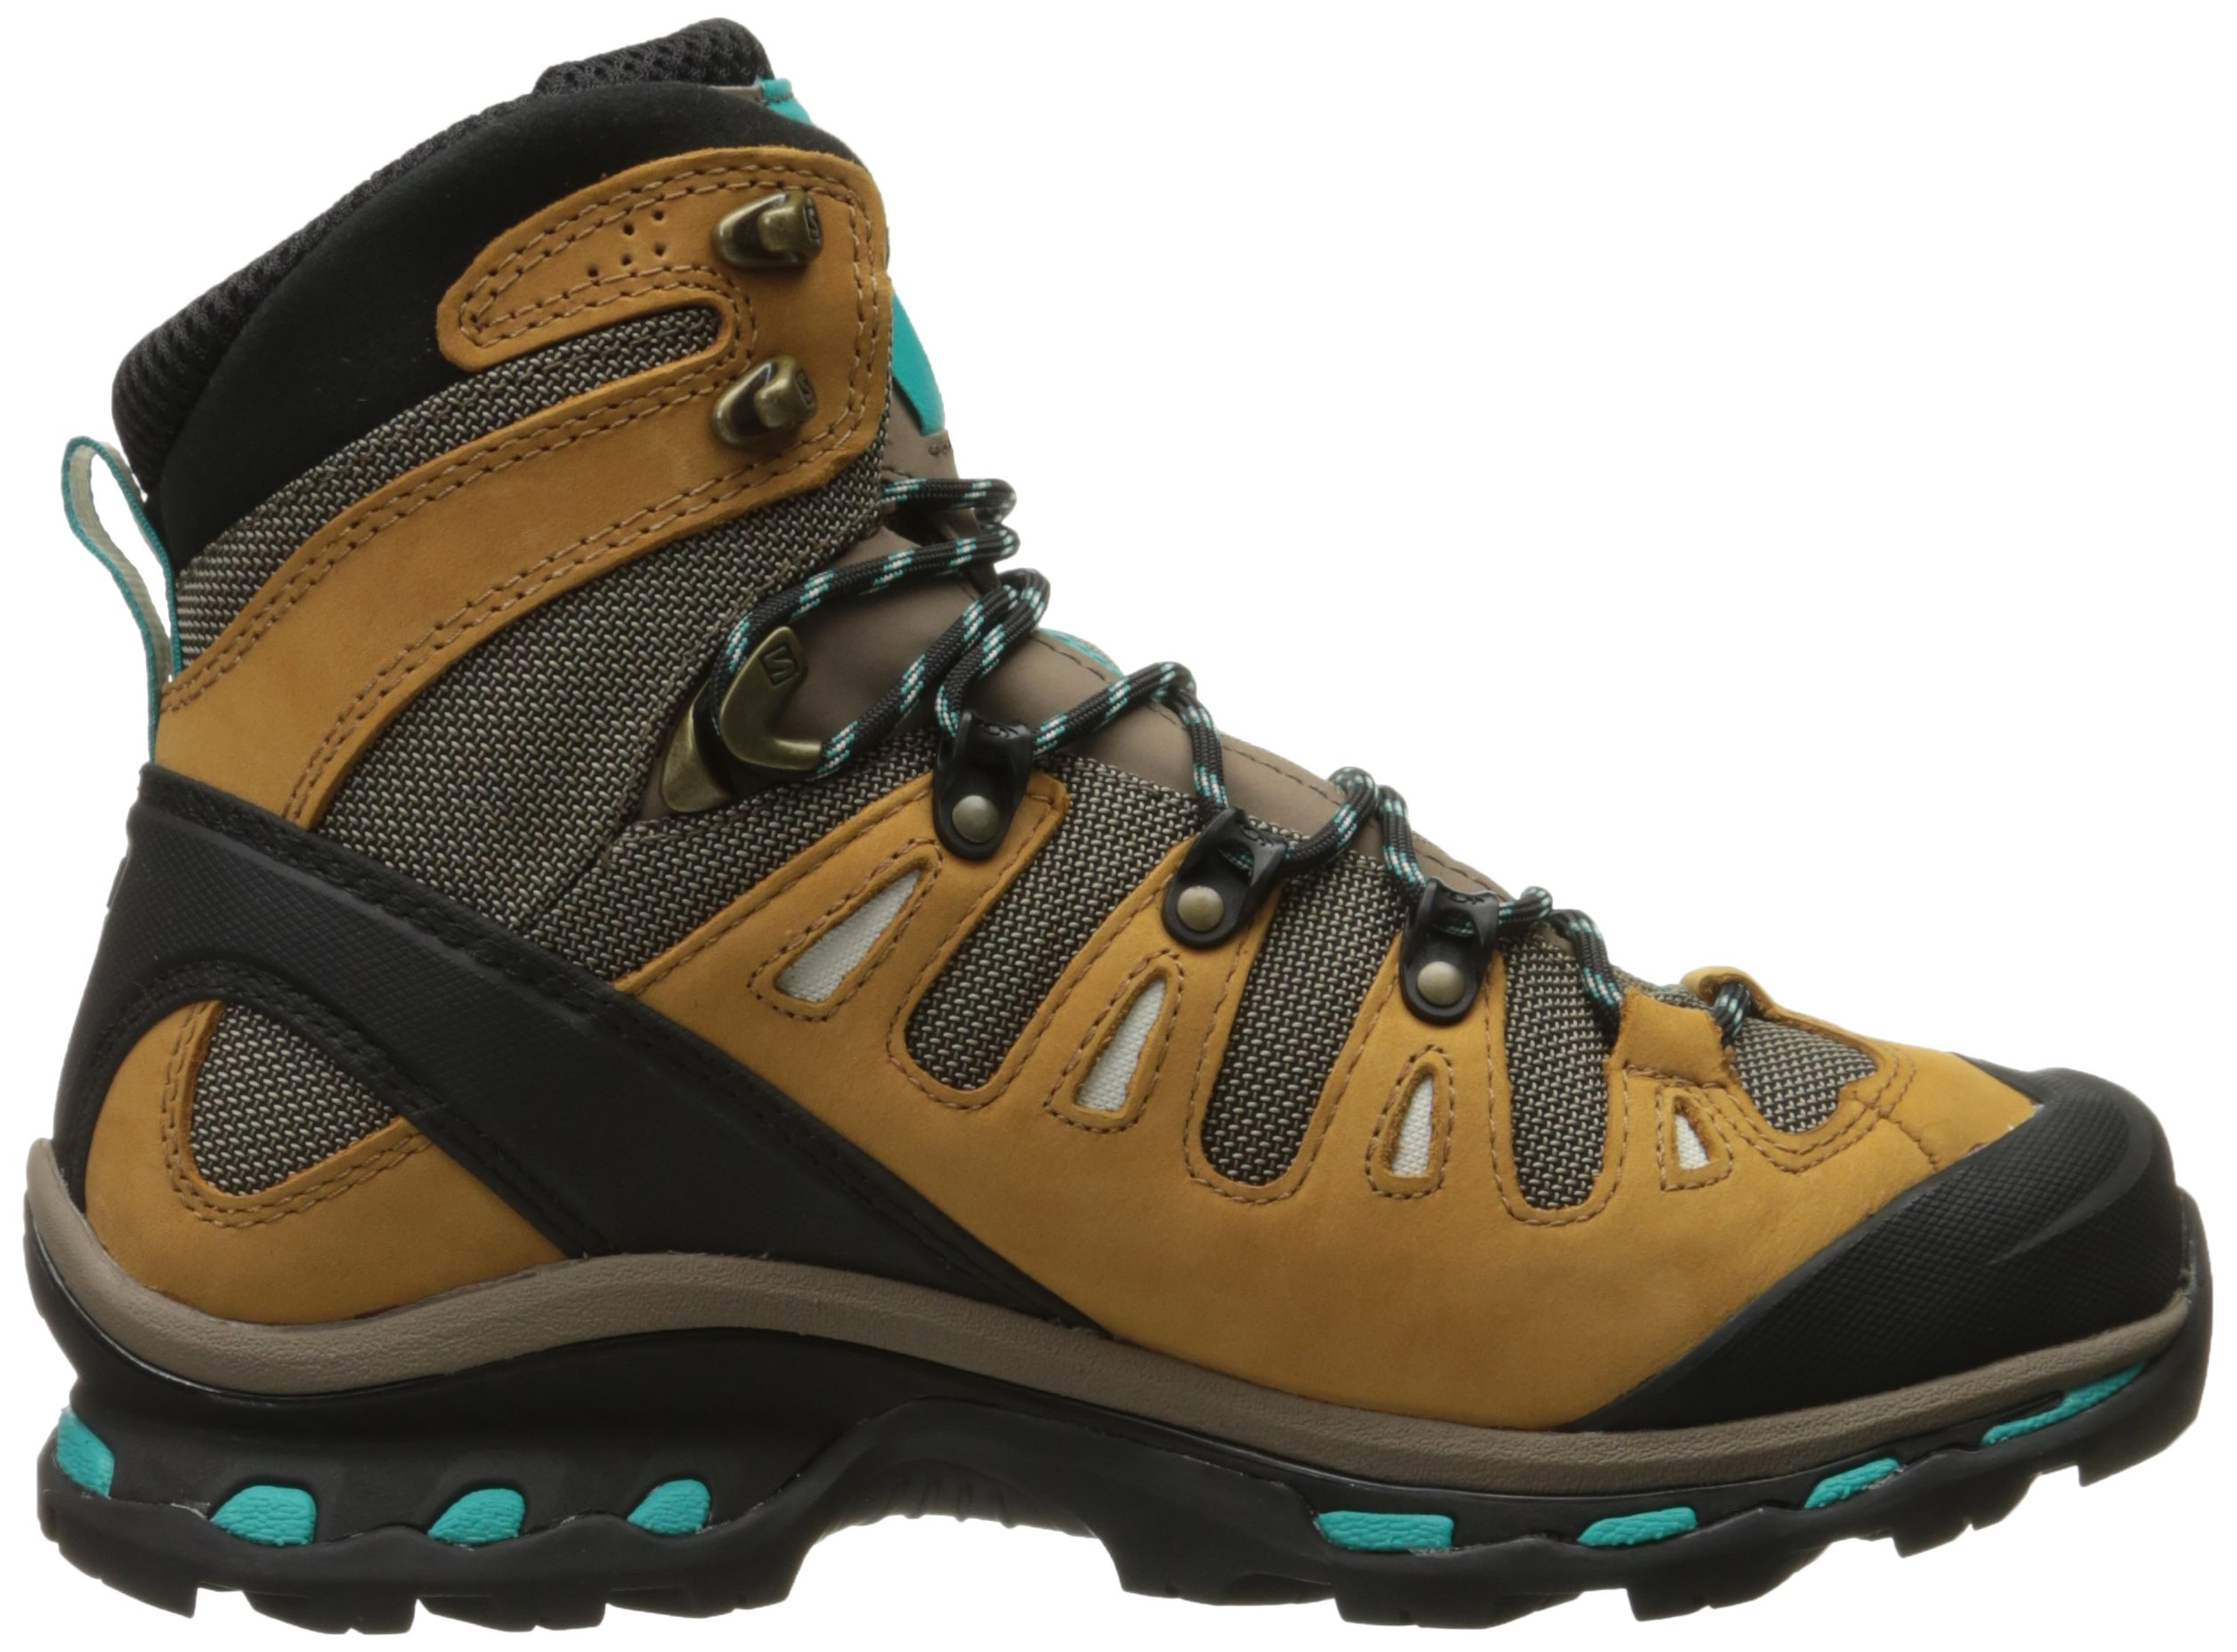 Salomon Women's Quest 4d 2 Gtx W Backpacking Boot, Shrew/Camel Gold Leather/Teal Blue Fabric, 8.5 M US by Salomon (Image #7)